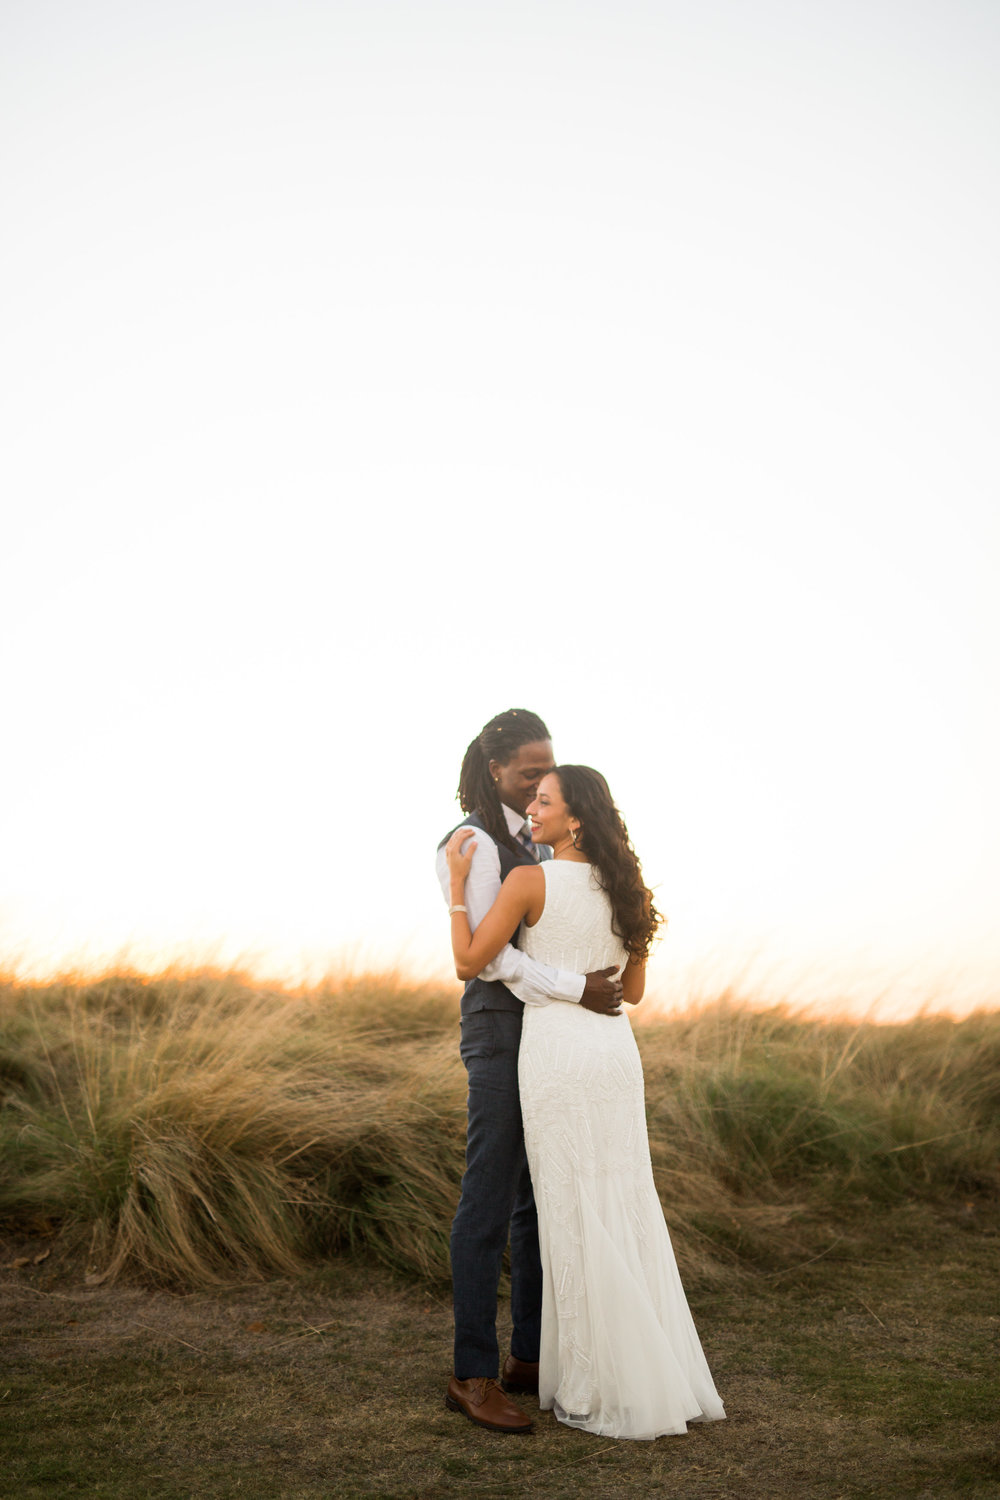 norman backyard wedding okc wedding photographer oklahoma bride and groom portraits sunset field